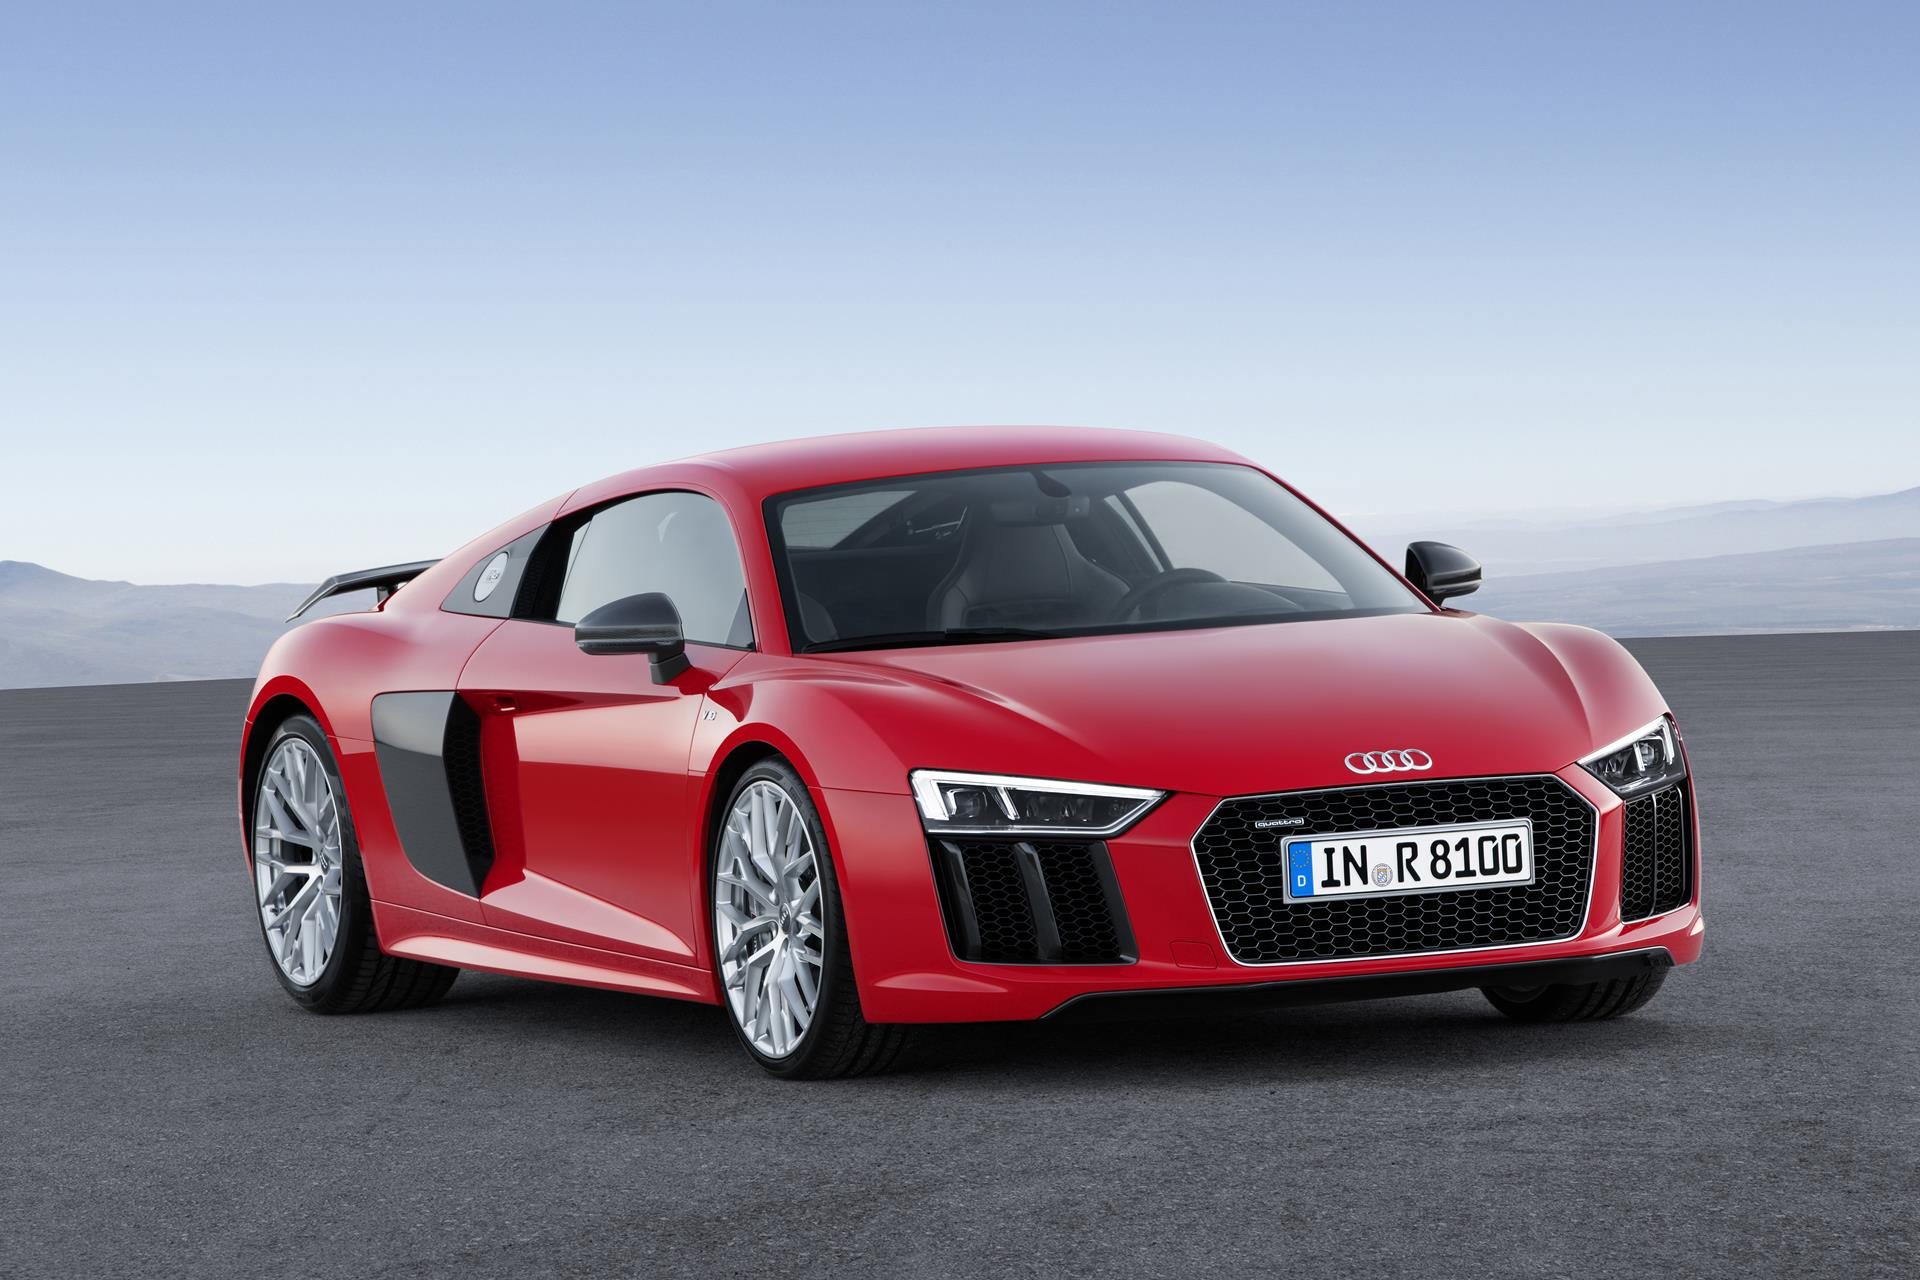 2016 Audi R8 V10 Plus Image Photo 9 Of 15